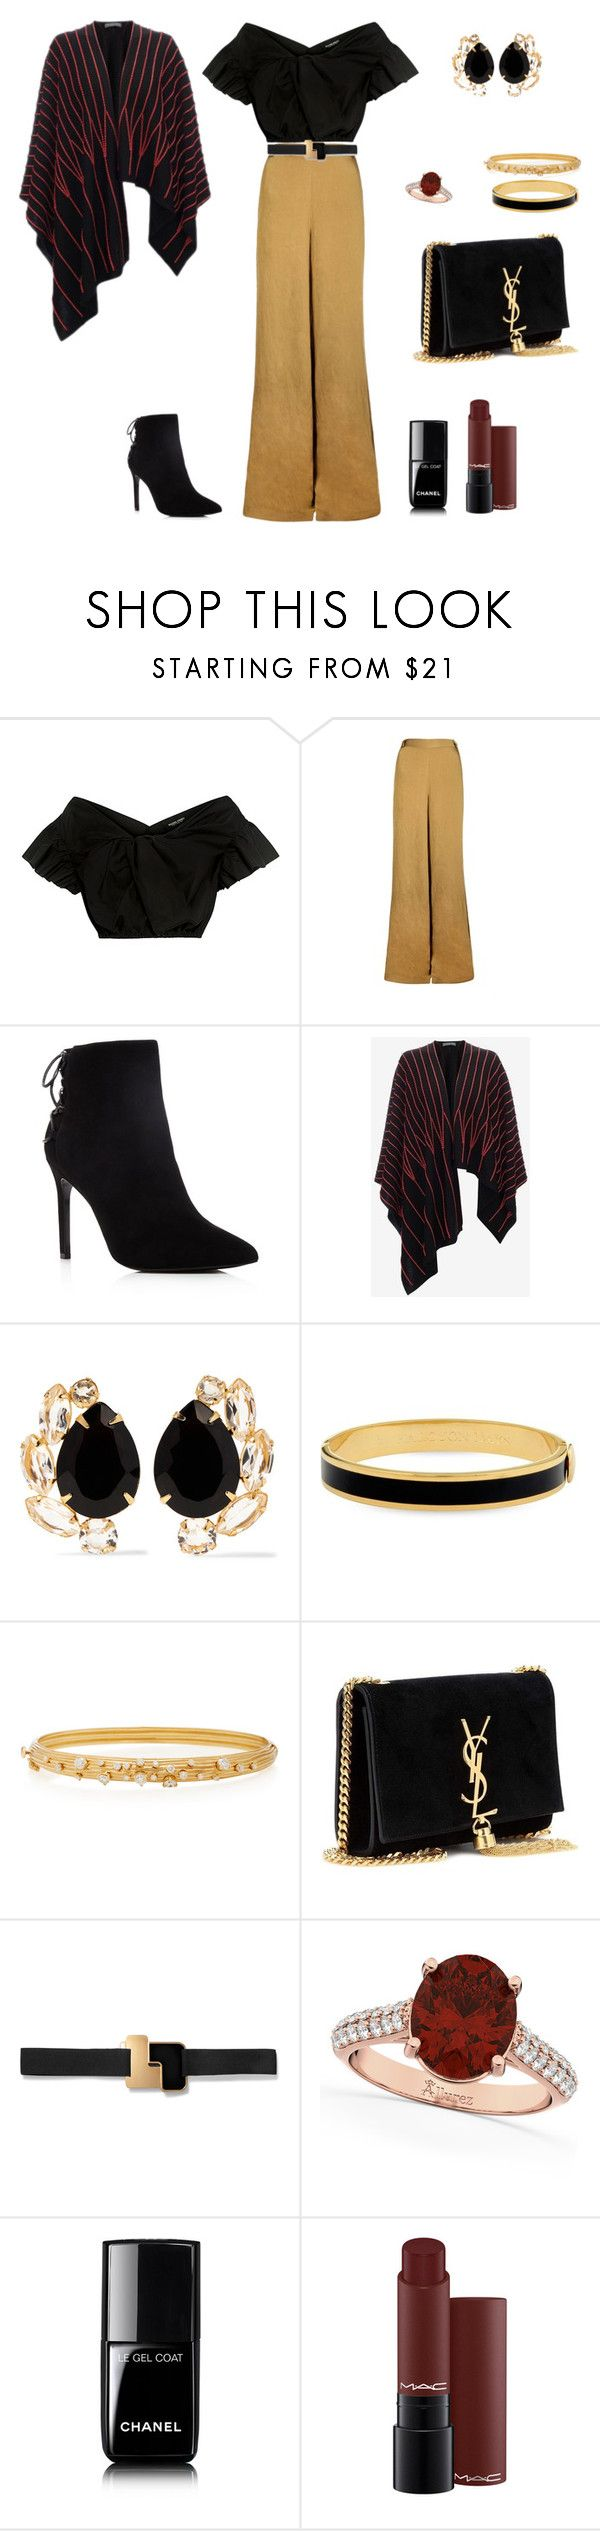 """m"" by ananleke on Polyvore featuring moda, Rachel Comey, The Bee's Sneeze, Charles David, Bounkit, Halcyon Days, Hueb, Yves Saint Laurent, Roksanda y Allurez"